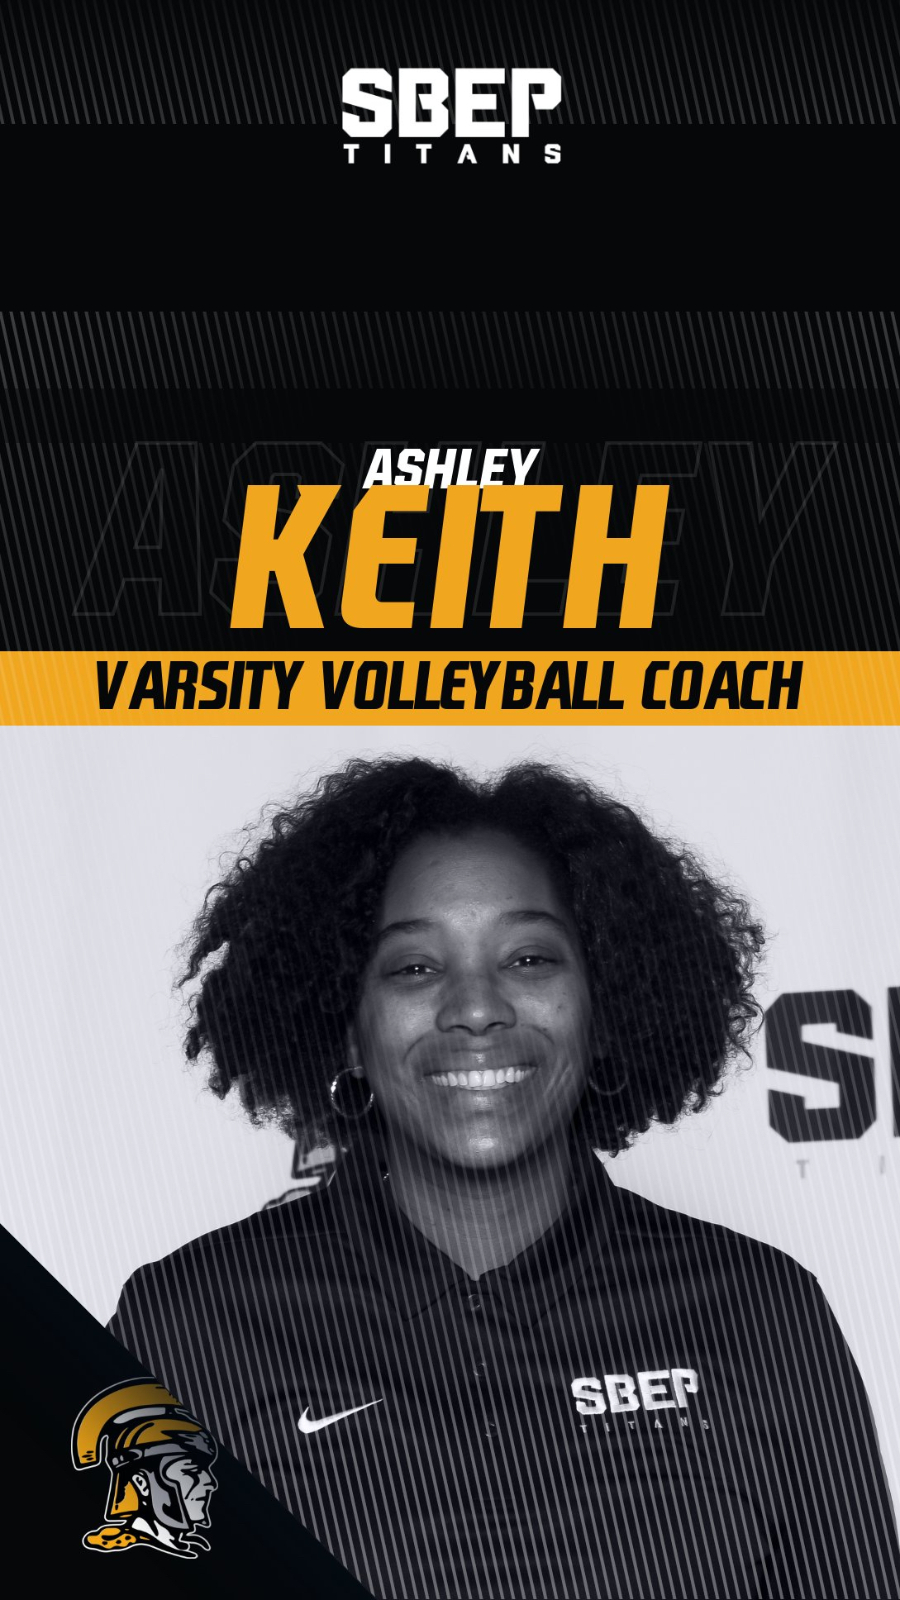 Ashley Keith Set to Lead Volleyball Program